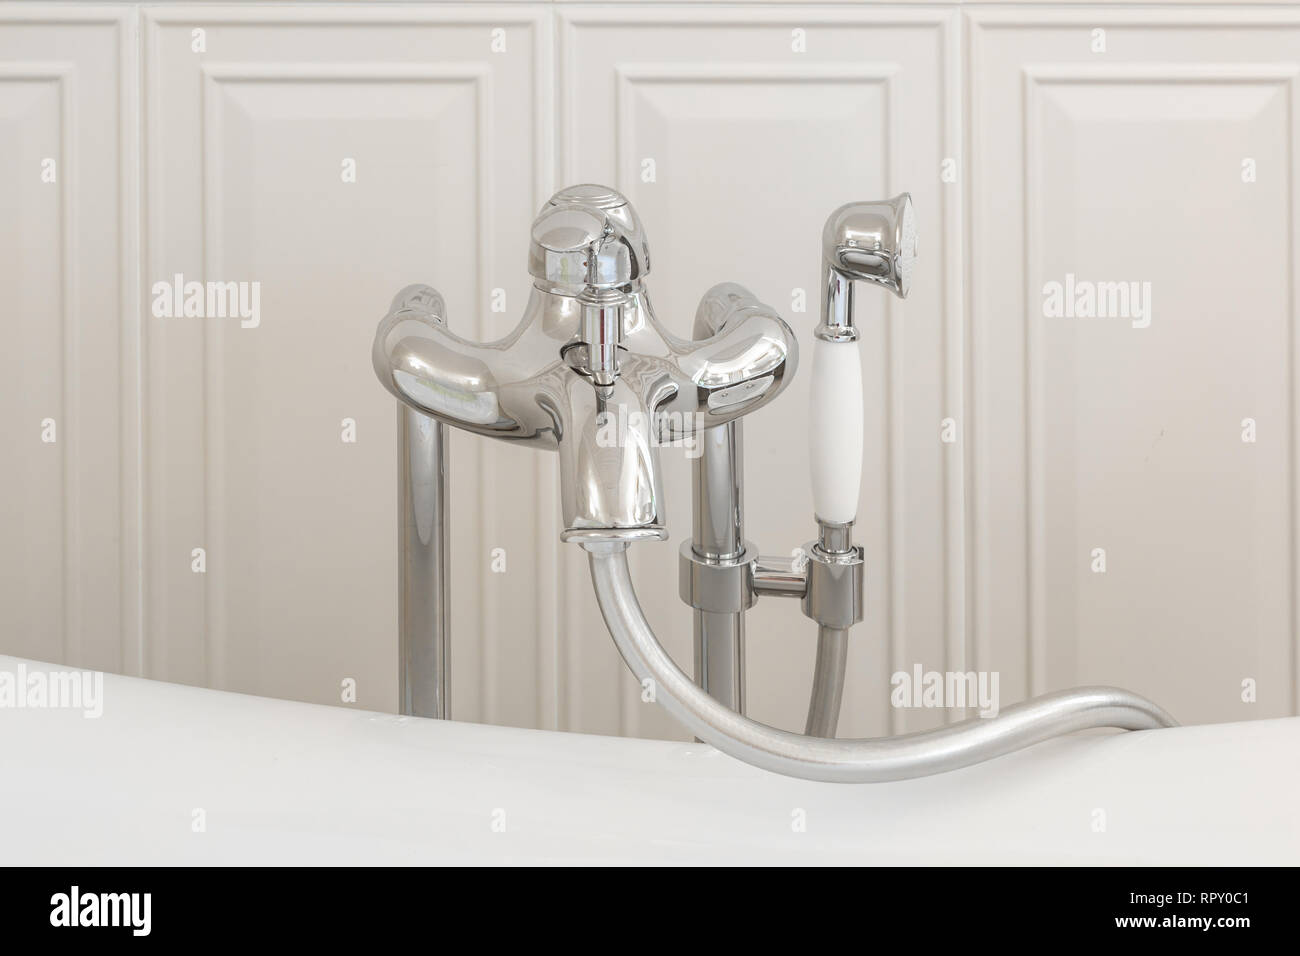 detail of a corner shower cabin with wall mount shower attachment - Stock Image